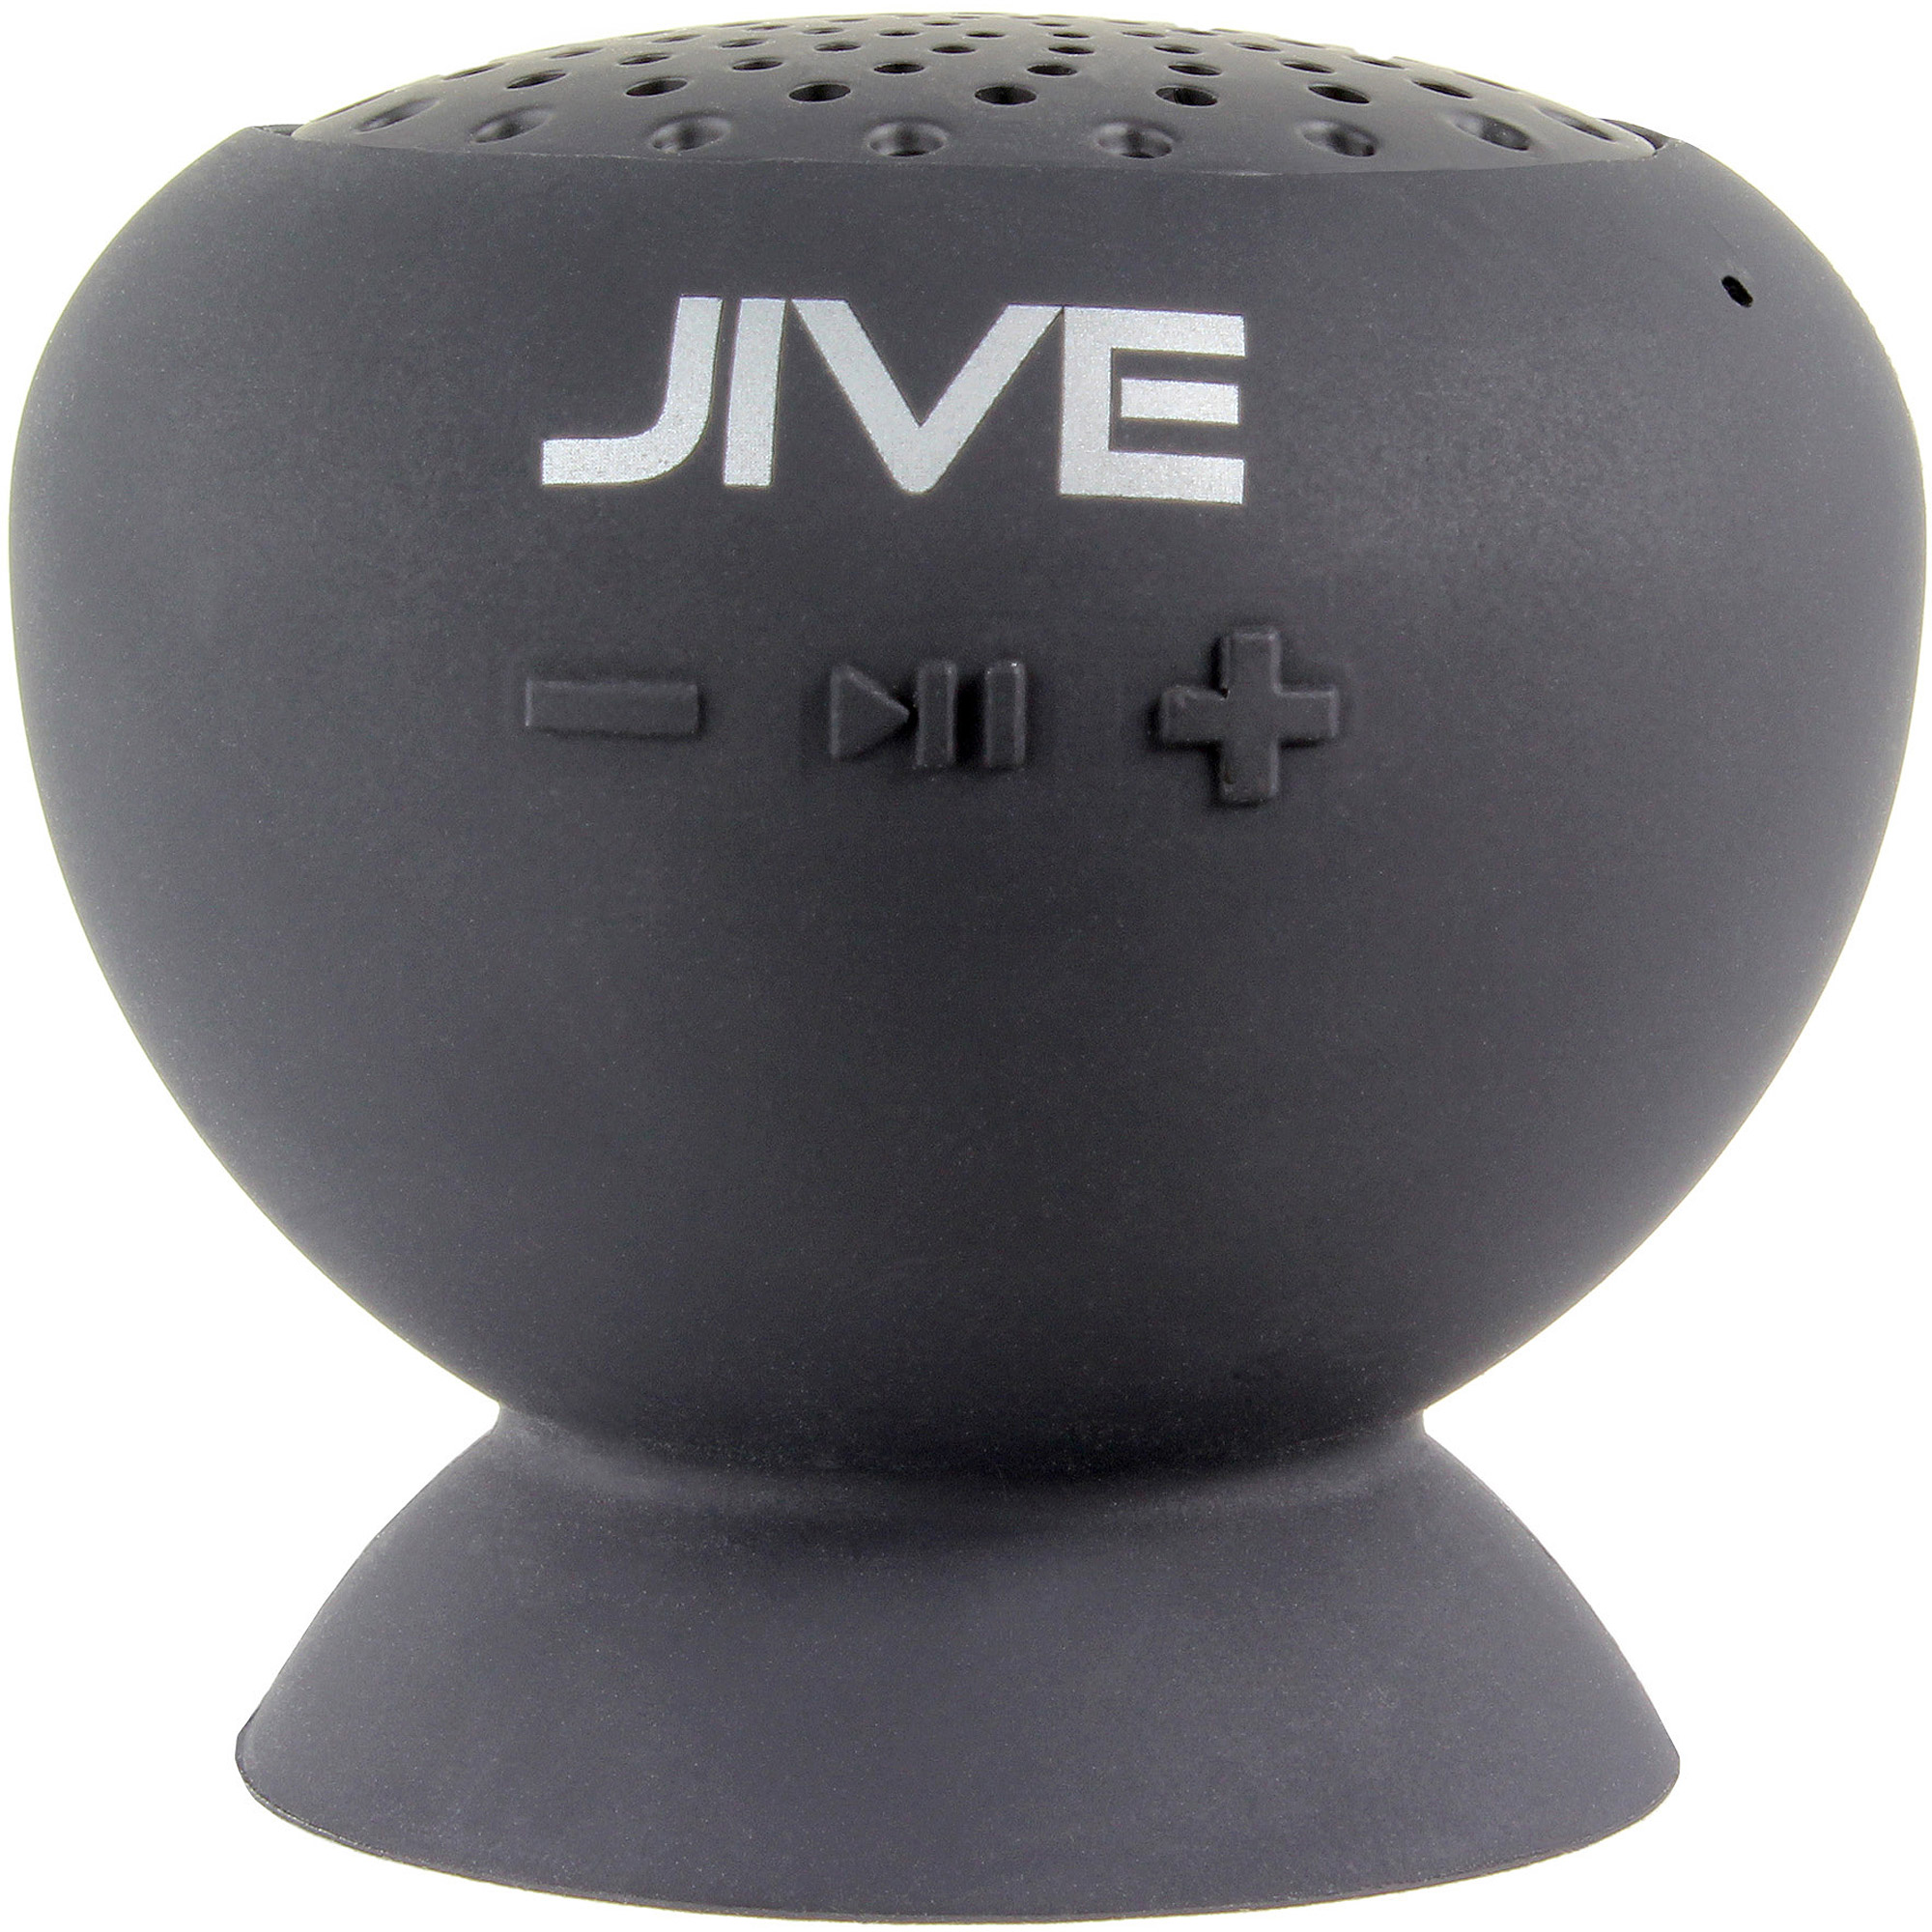 PC Treasures Lyrix Jive Water-Resistant Bluetooth Speaker, Assorted Colors